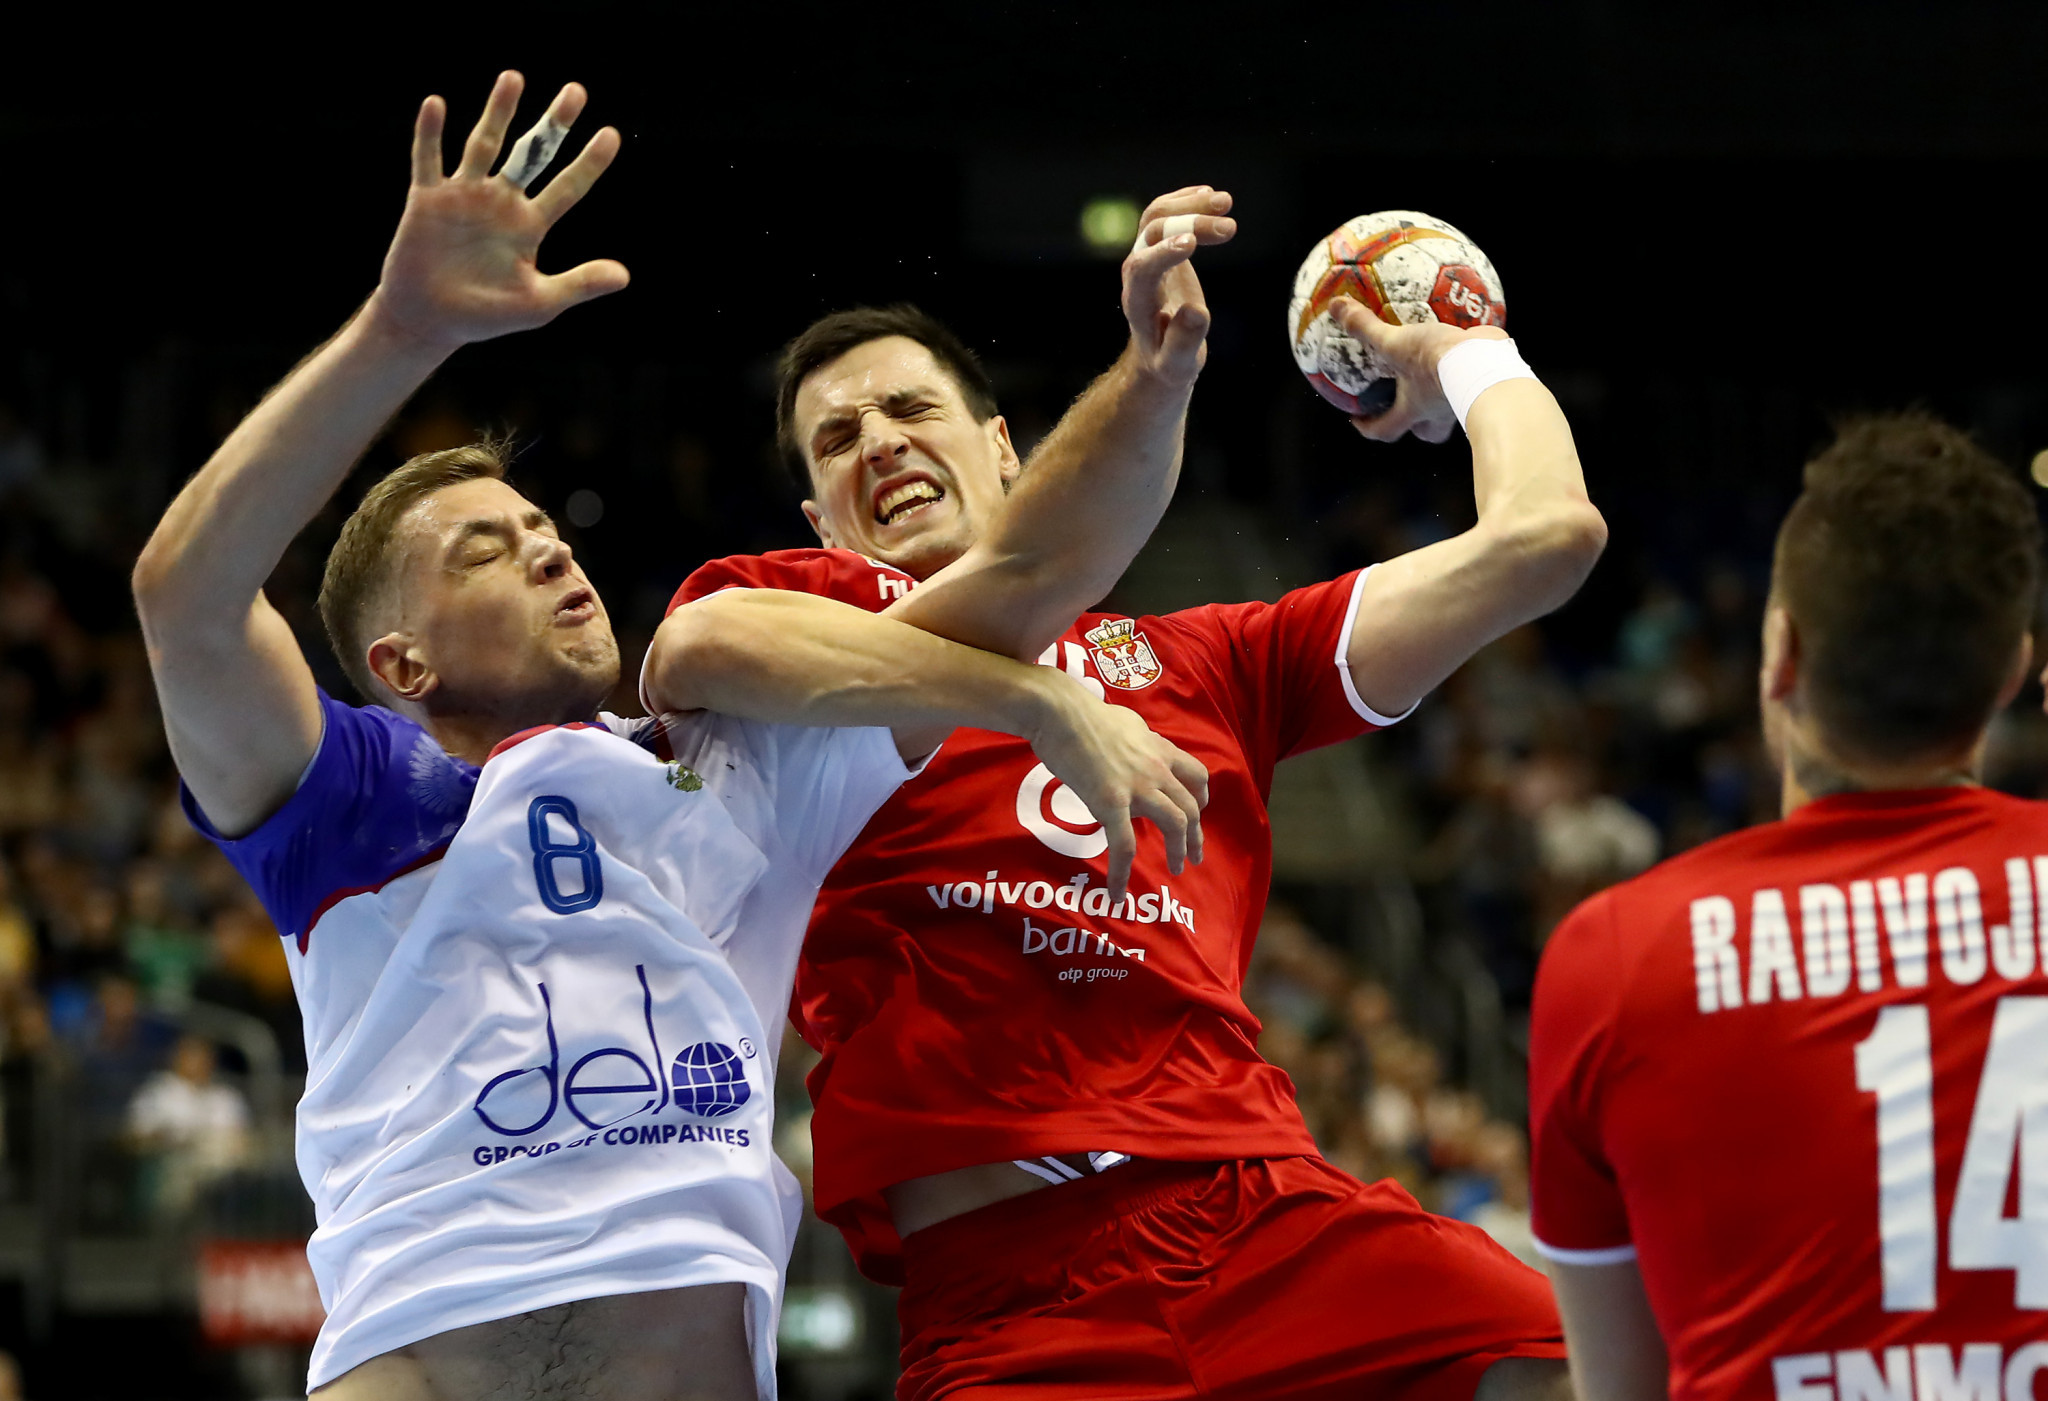 Serbia and Russia drew 30-30 in their Group A clash at the IHF Men's Handball World Championship in Berlin ©Getty Images